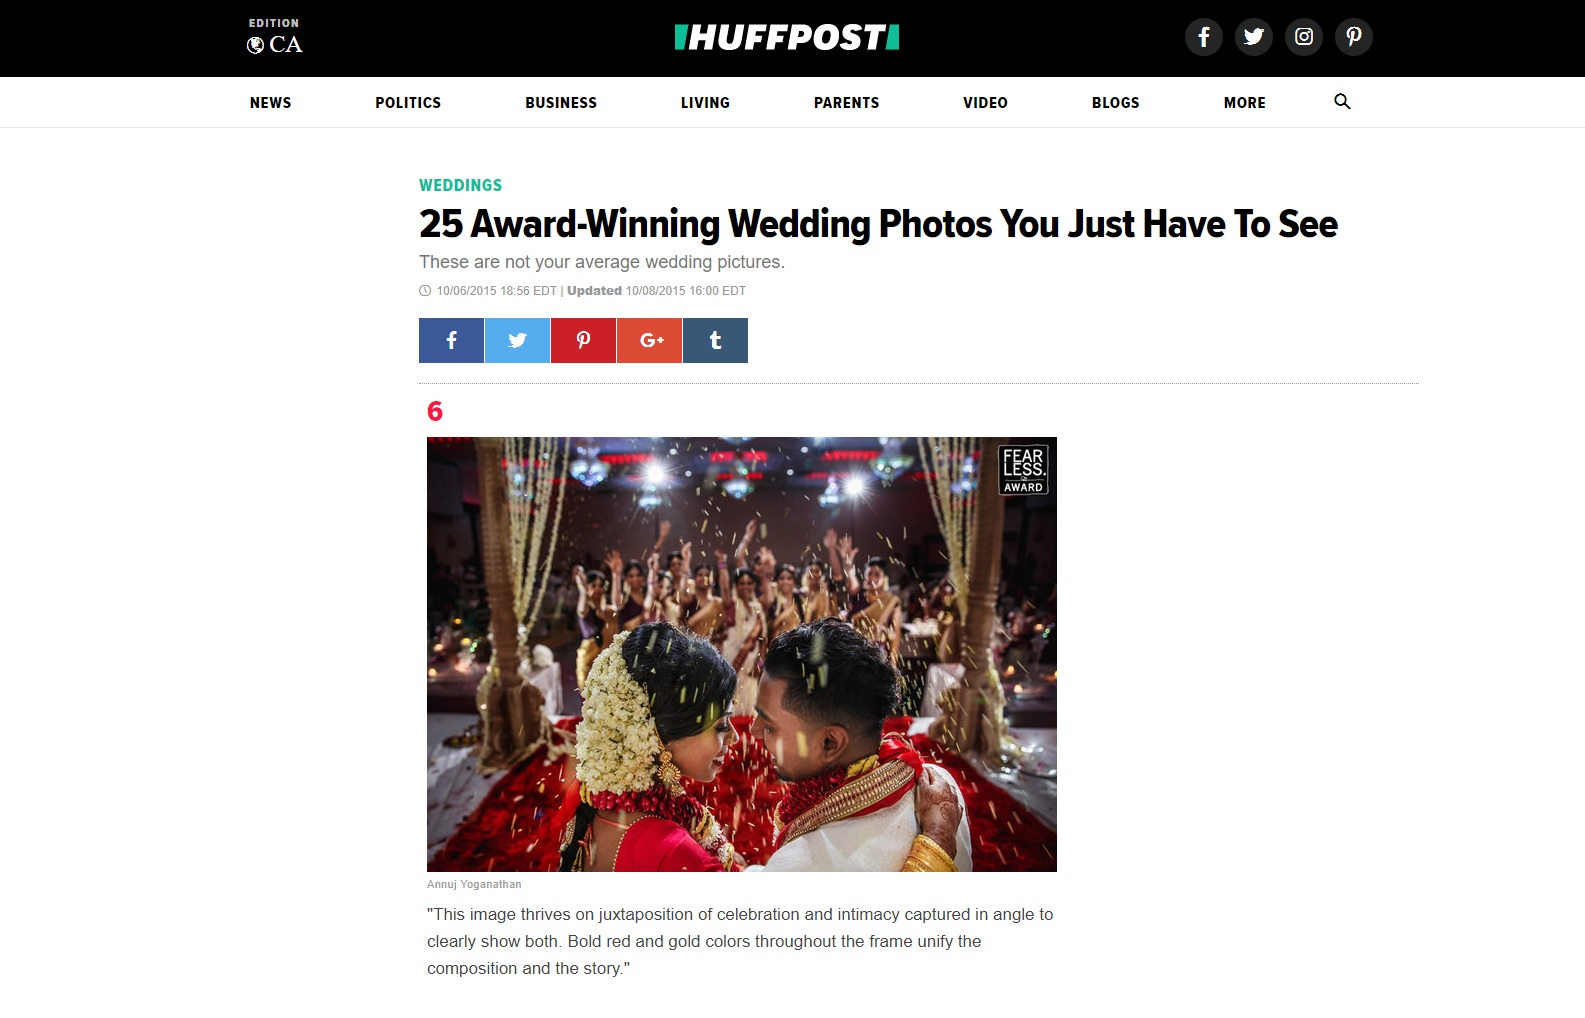 Huffington Post Feature - 25 Award-Winning Wedding Photos You Just Have To See